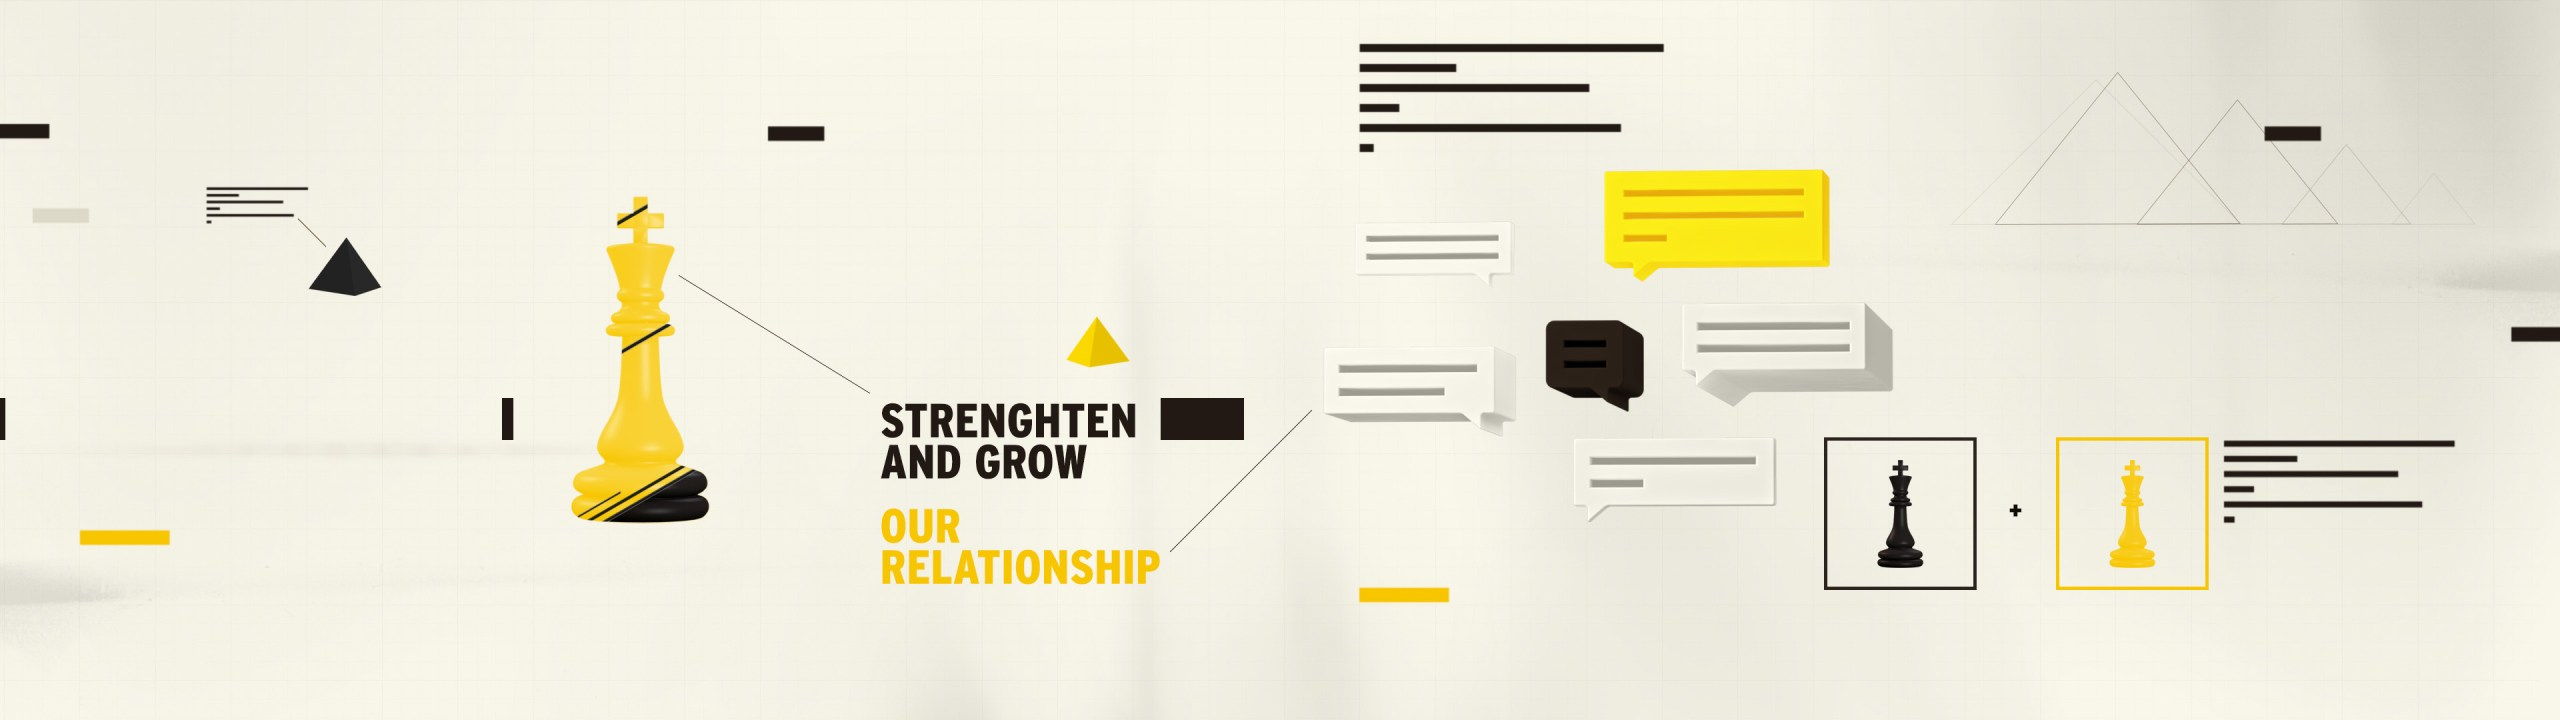 25_strenghten_grow_relationships_clients_v3